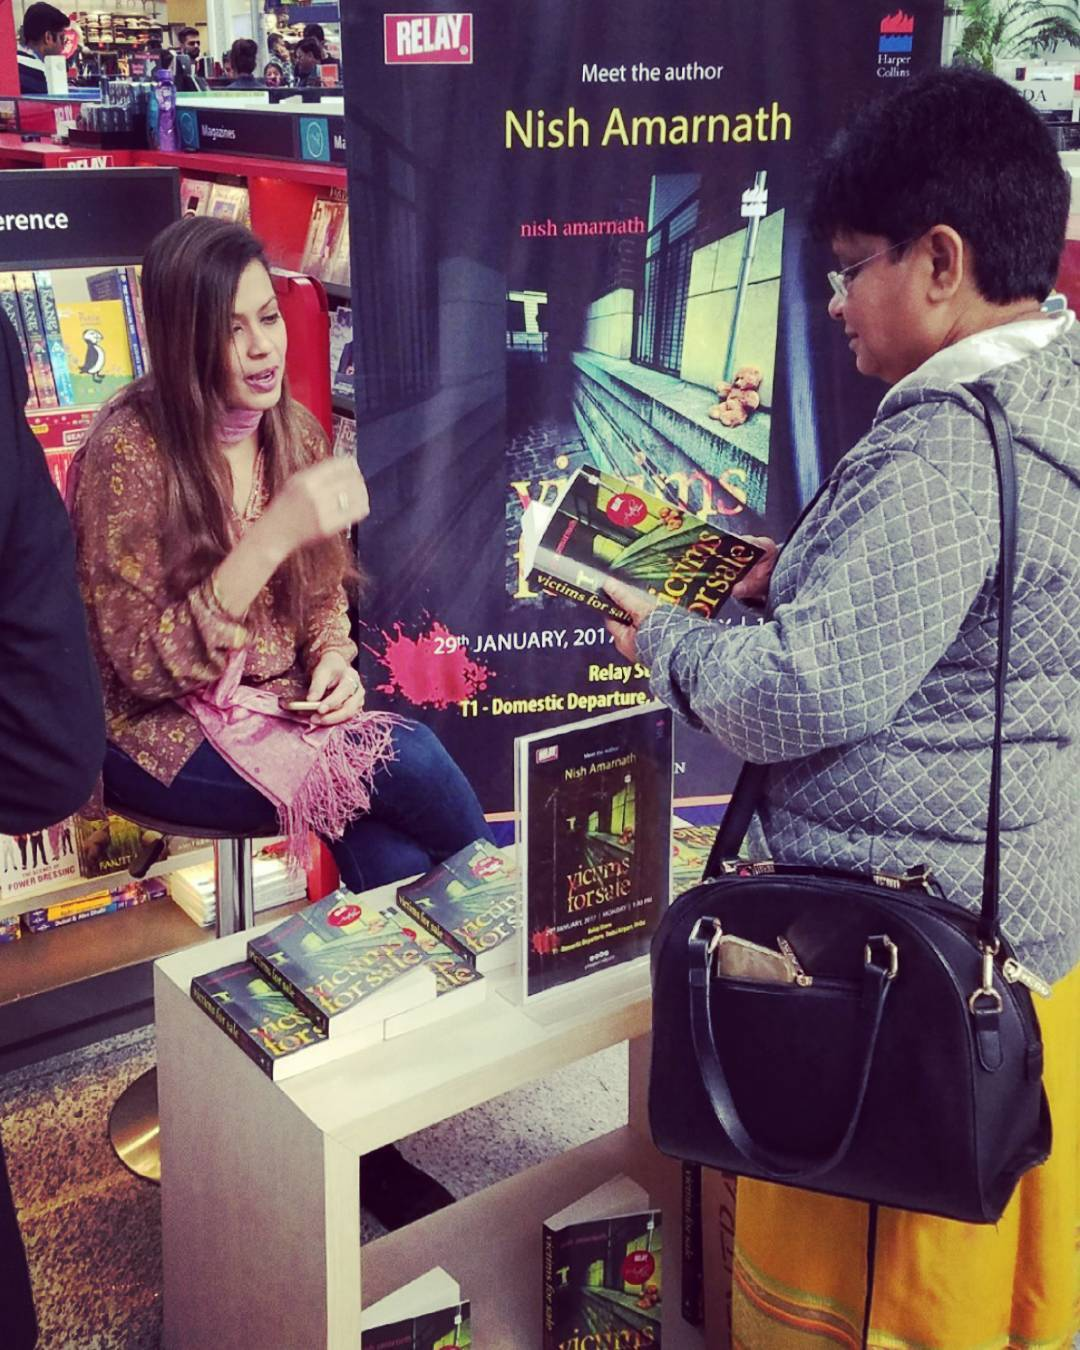 RELAY INDIA - AIRPORT LAUNCH, DELHI. 2018 - Chatting with a customer at Delhi Airport's RELAY India store She chose to make her cabin baggage 500 grams heavier with VICTIMS FOR SALE! :)KEYWORDS: RELAY India, bookstores, author events, Delhi airport, Nish Amarnath, Nischinta Amarnath, Victims For Sale.